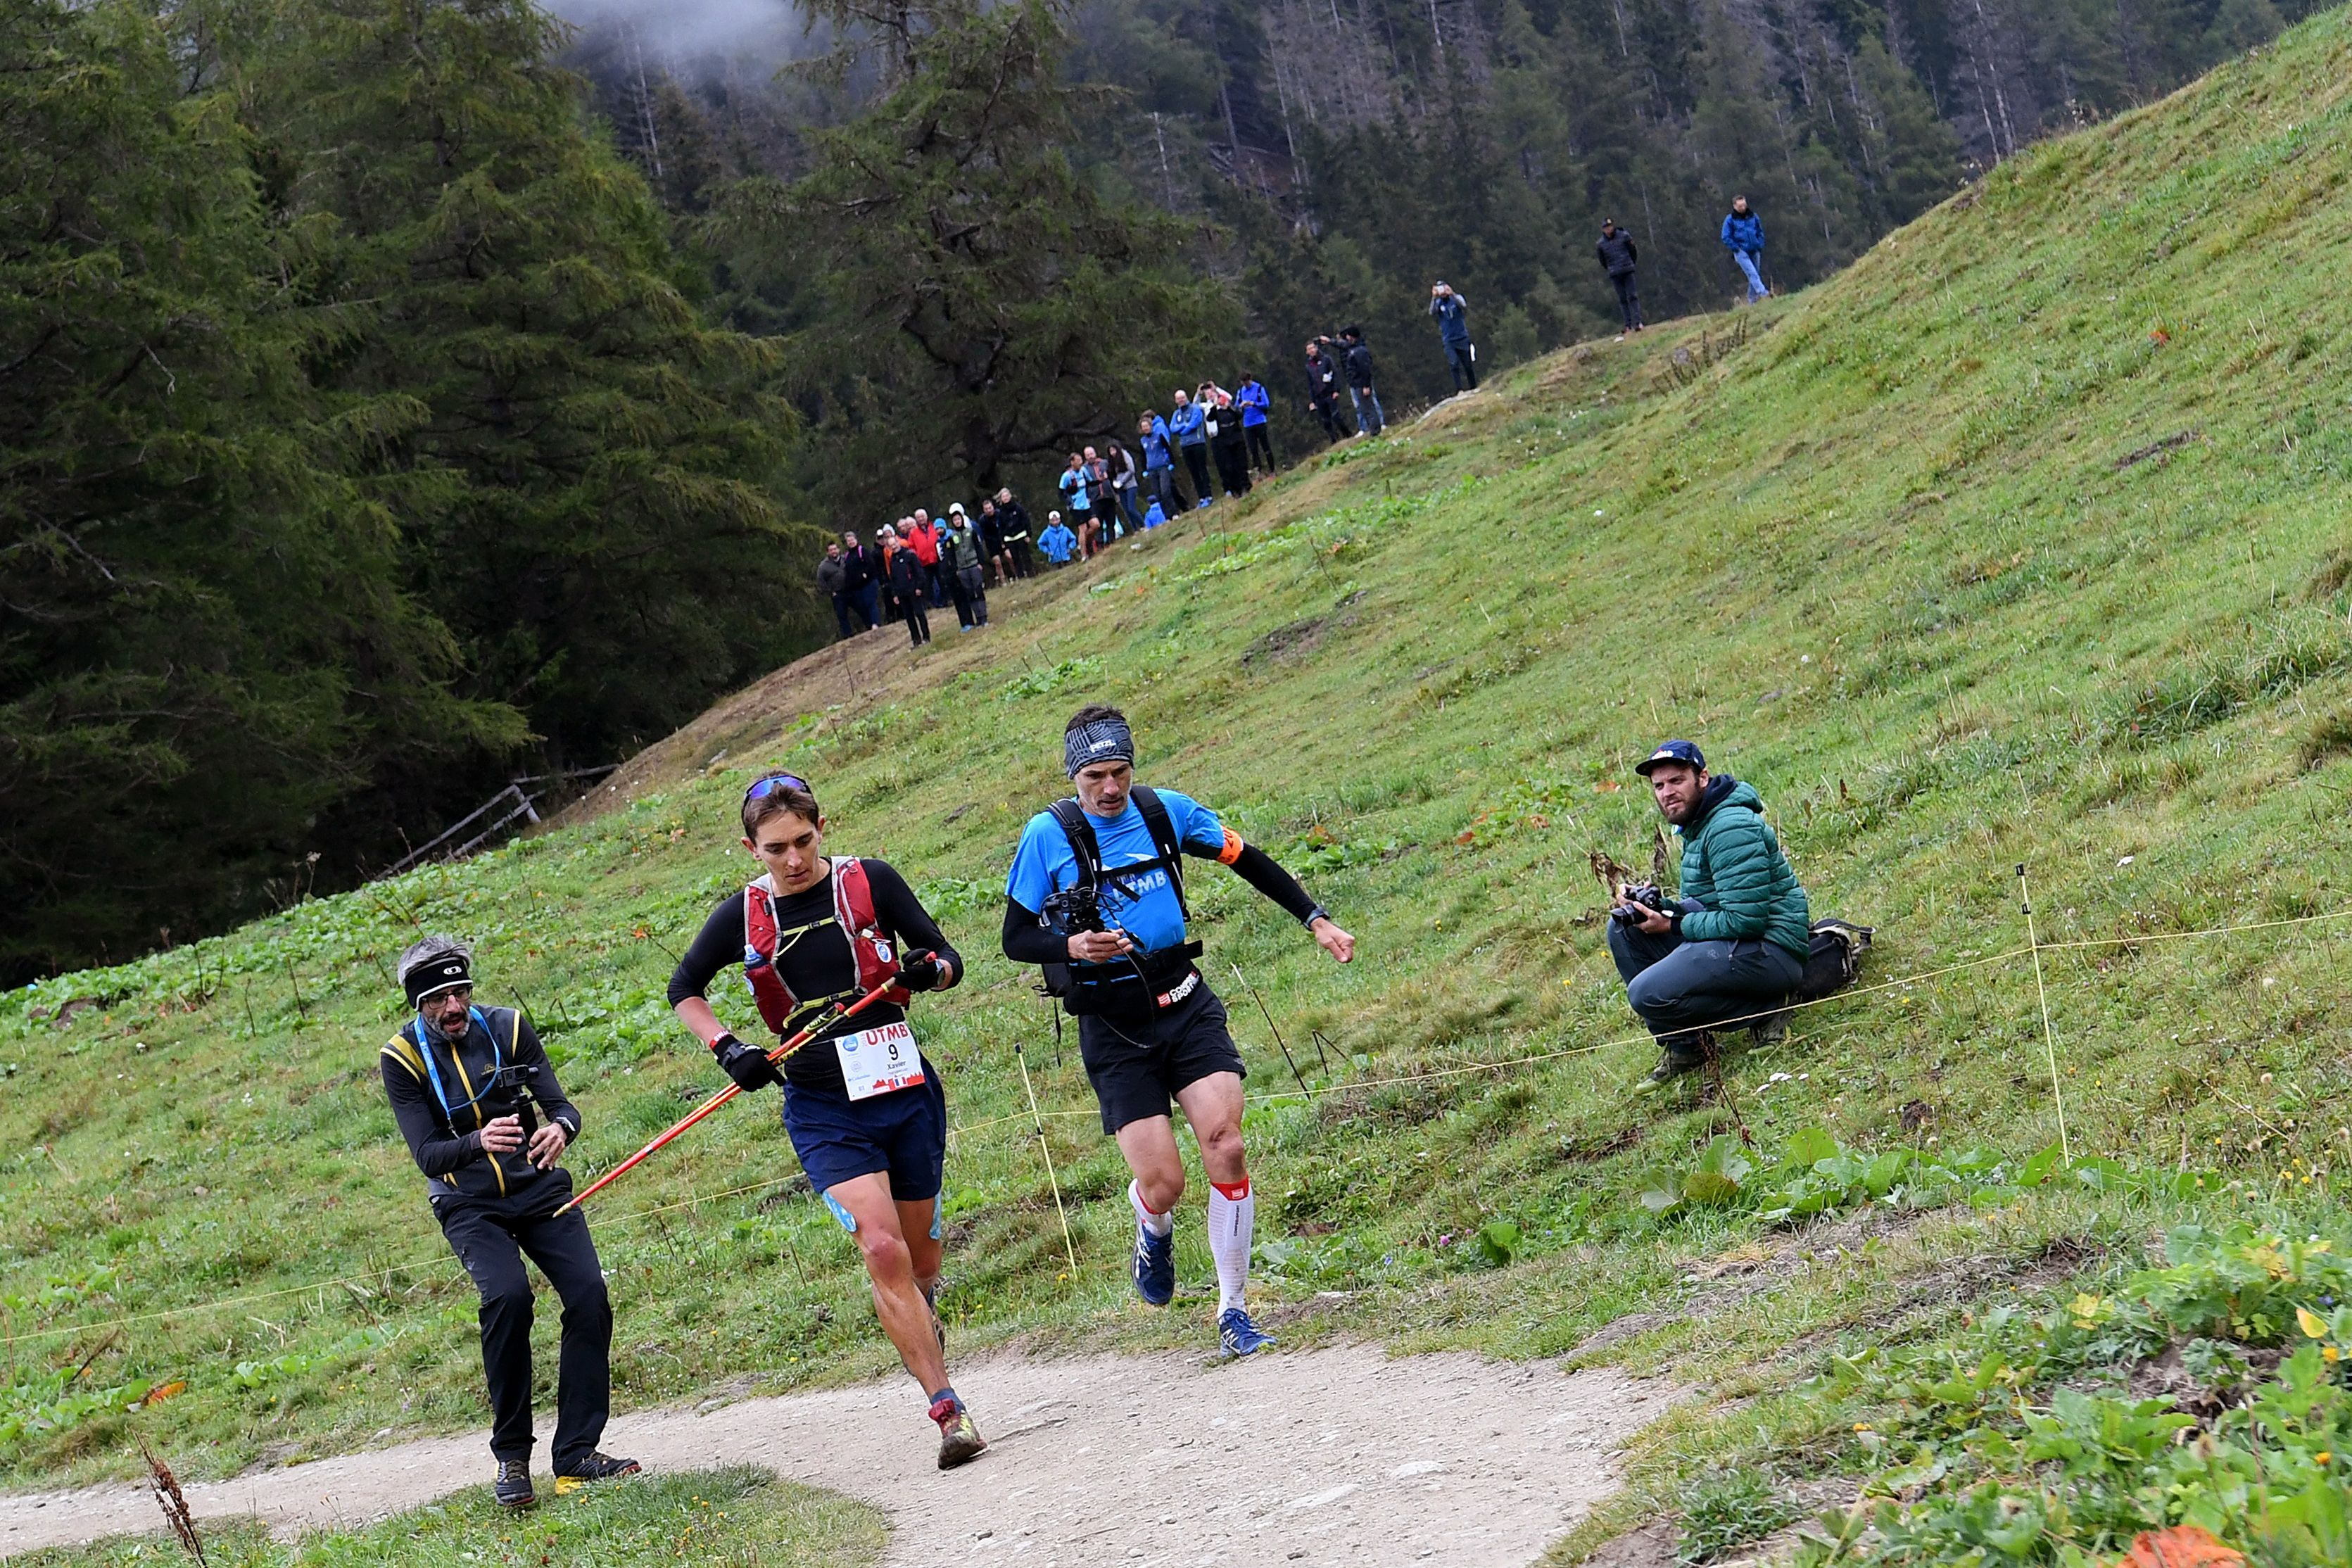 A new trail race has been criticised for offering unequal prize money